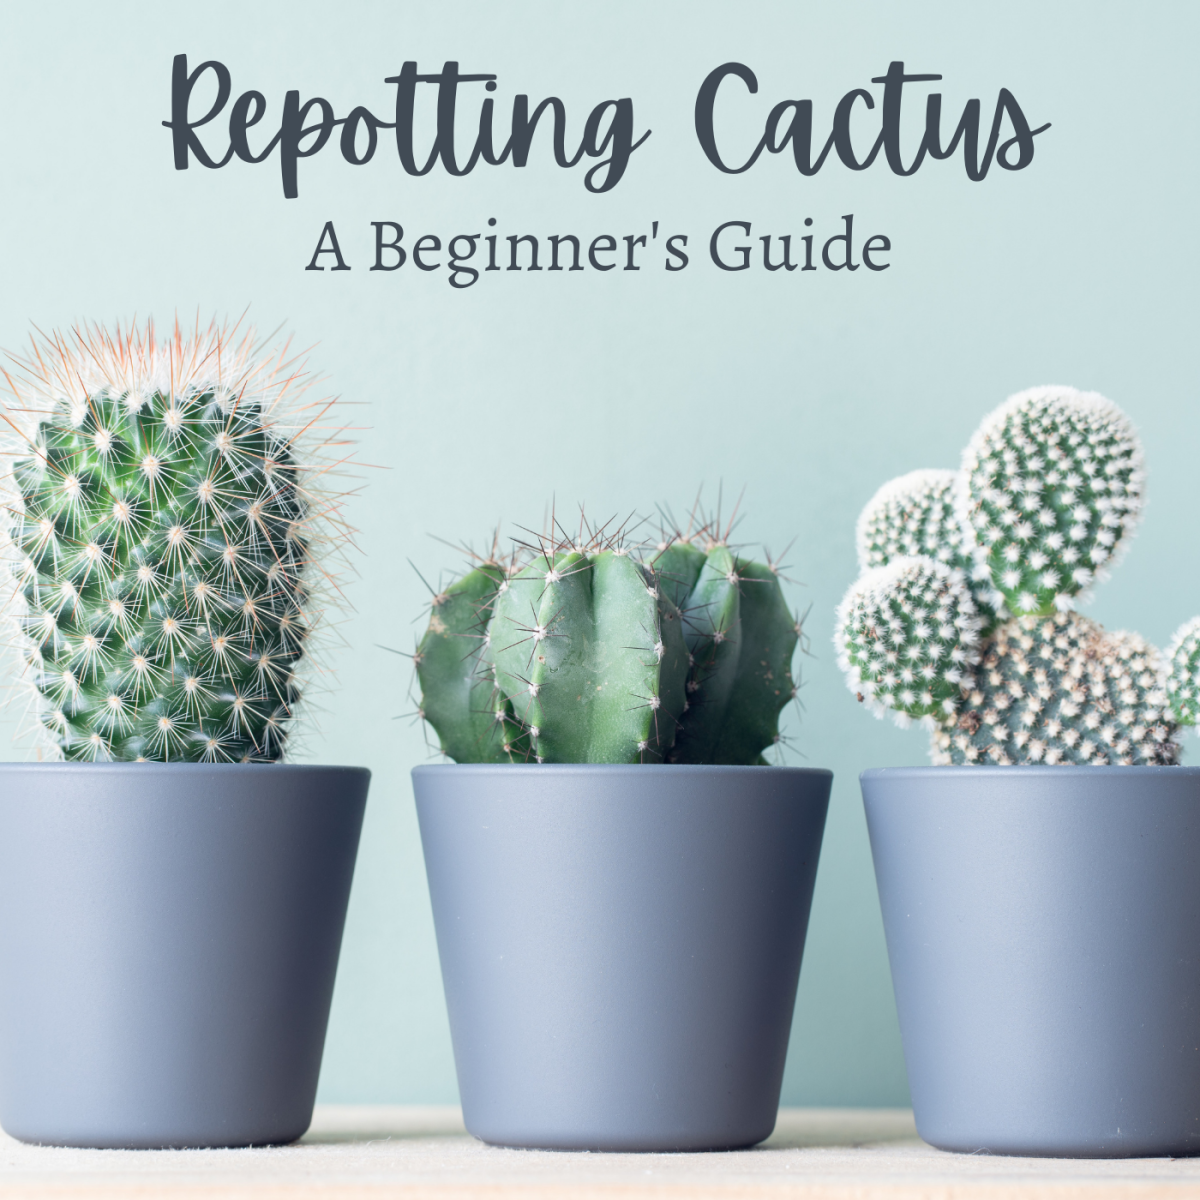 A beginner's guide to handling cactus without getting hurt.